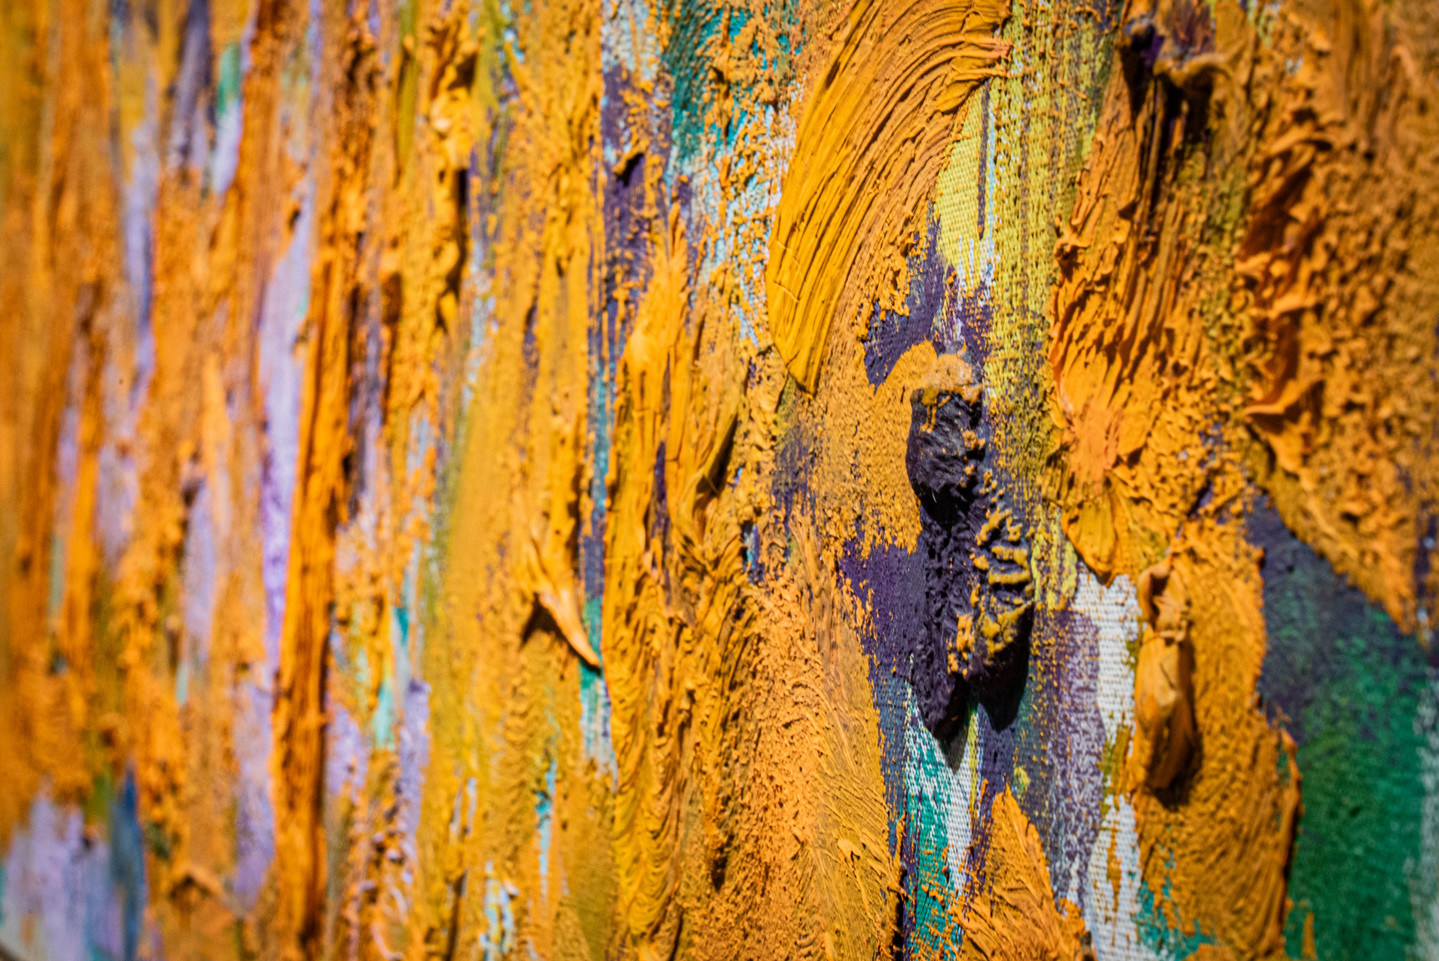 Close-up detail of an abstract painting with very thick and gestural brushstrokes of mostly orange paint.